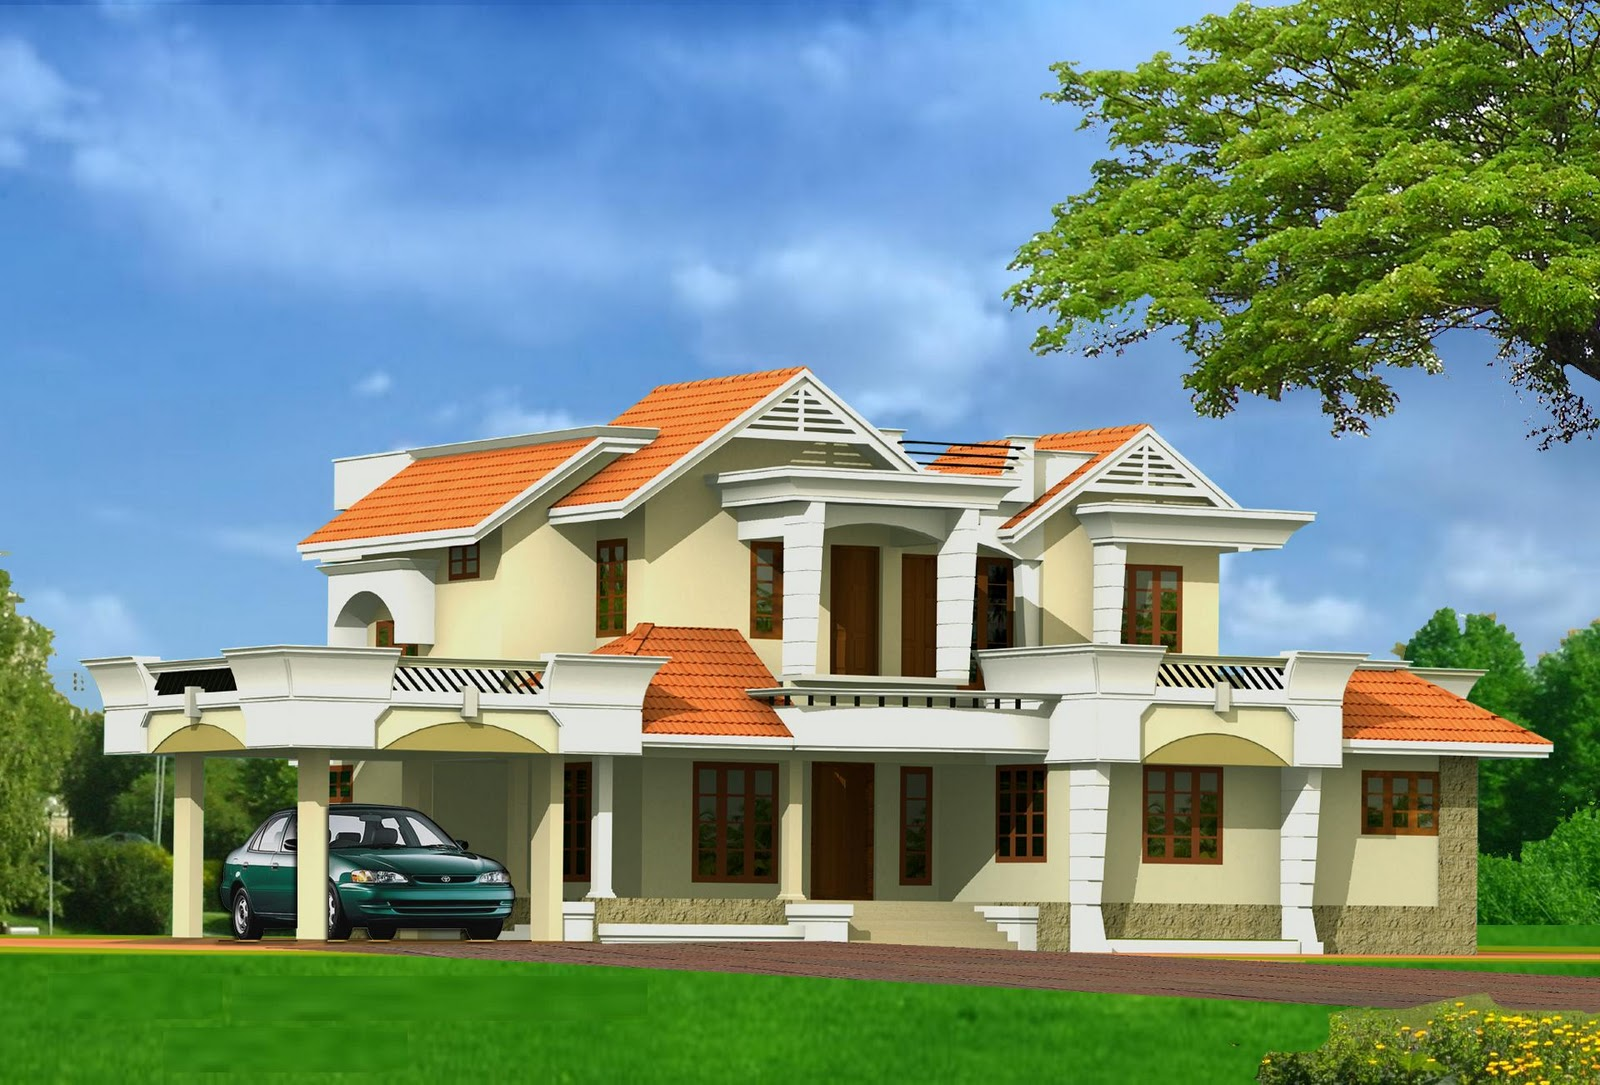 House plans and design architectural designs of for Home construction plans